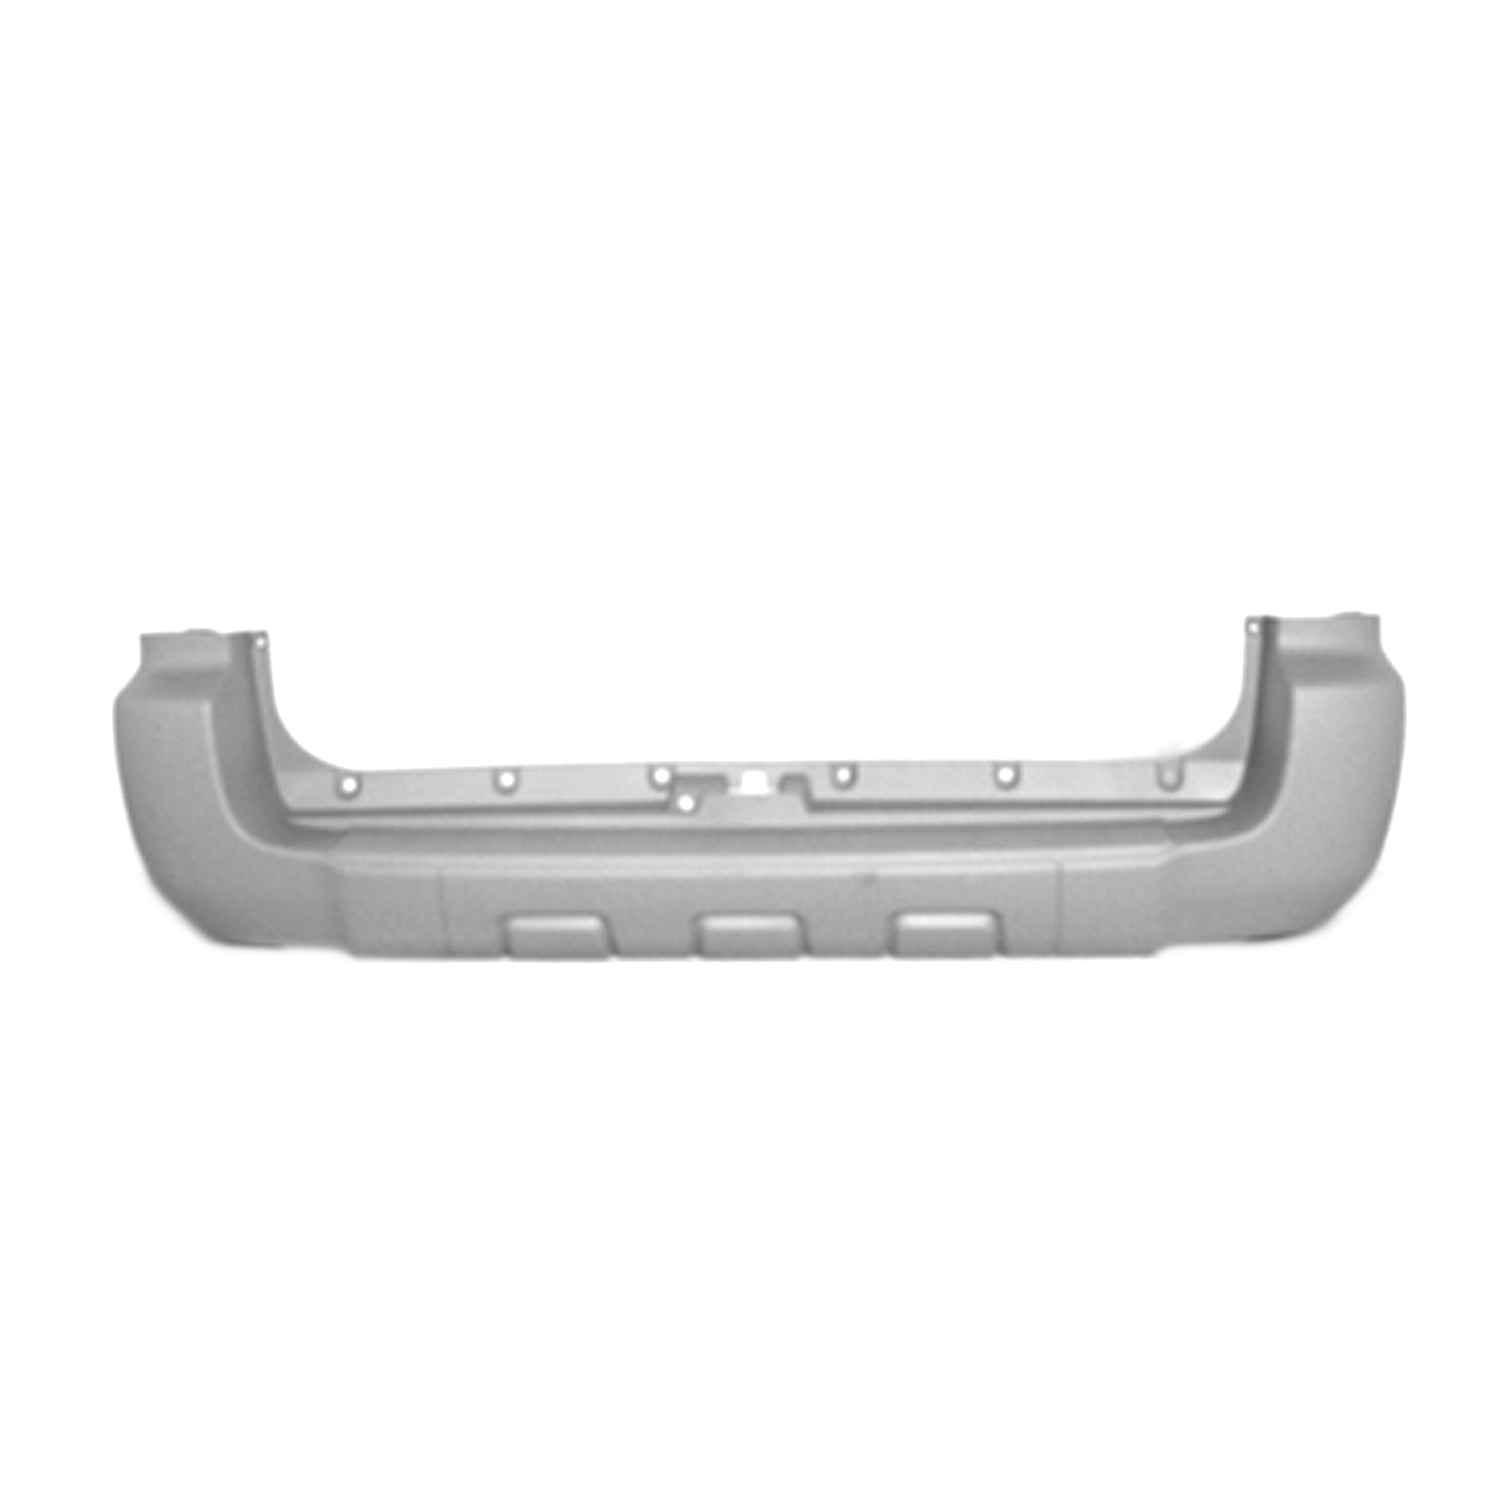 Fits 2006-2009 Toyota 4Runner Rear Bumper Cover 187-01545